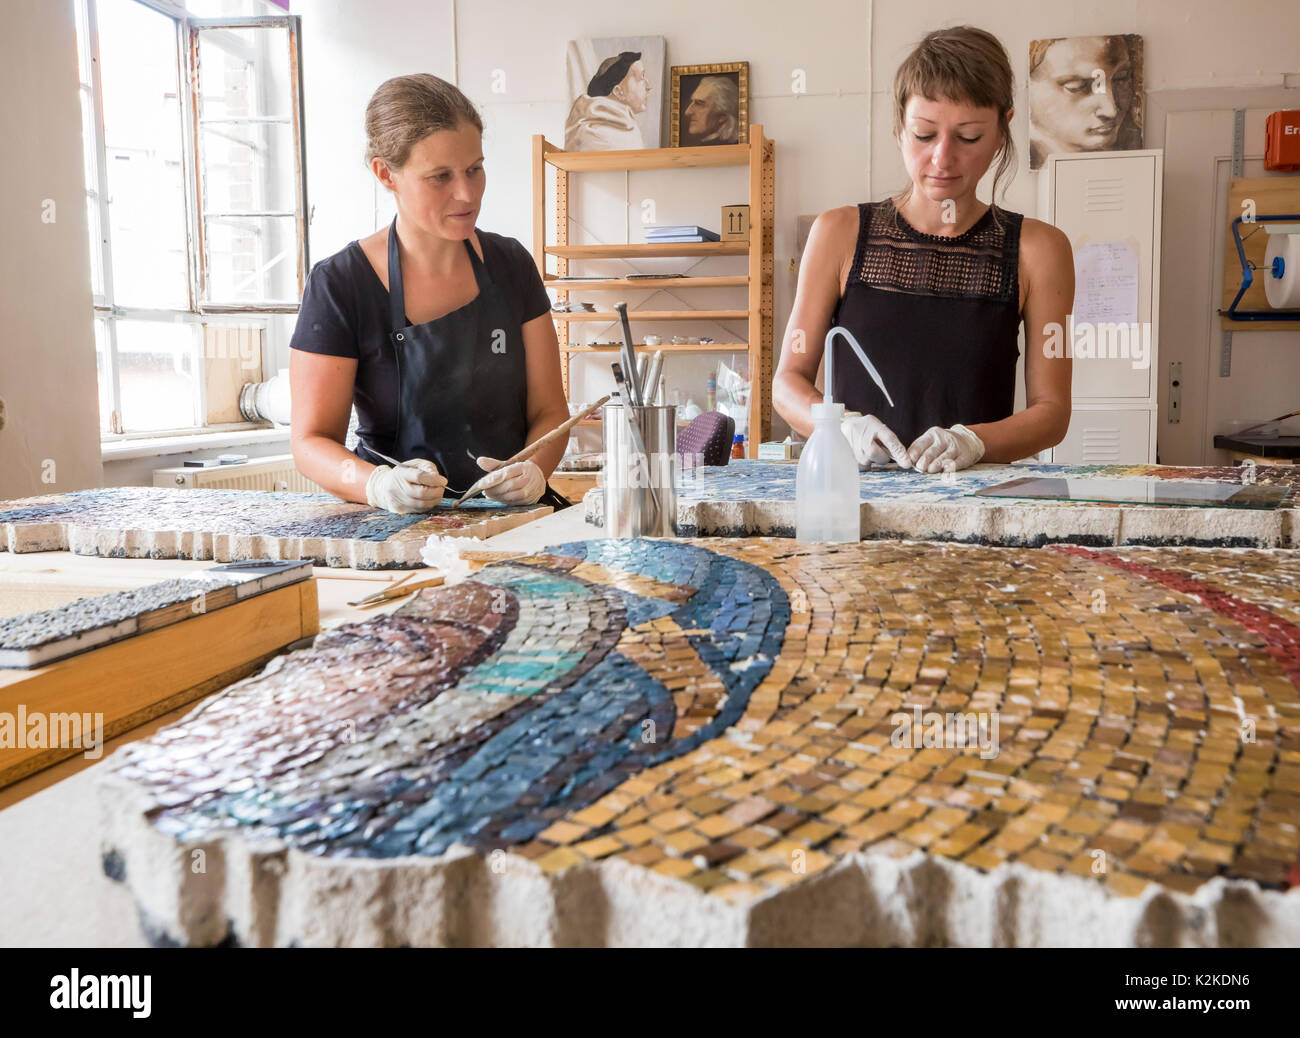 Erfurt, Germany. 31st Aug, 2017. Janka Acht (l) and Simone Schmiedkunz restore fragments of the monumental St. Mary's mosaic which will be displayed in the roof truss of the dome in Erfurt, Germany, 31 August 2017. The artwork used to hang on the western facade of the dome, but had to be taken down during deconstruction works on the roof of the long house ('Langhaus') in 1968. The mosaic has not been displayed publically ever since. Photo: Arifoto Ug/Michael Reichel/dpa-Zentralbild/dpa/Alamy Live News - Stock Image